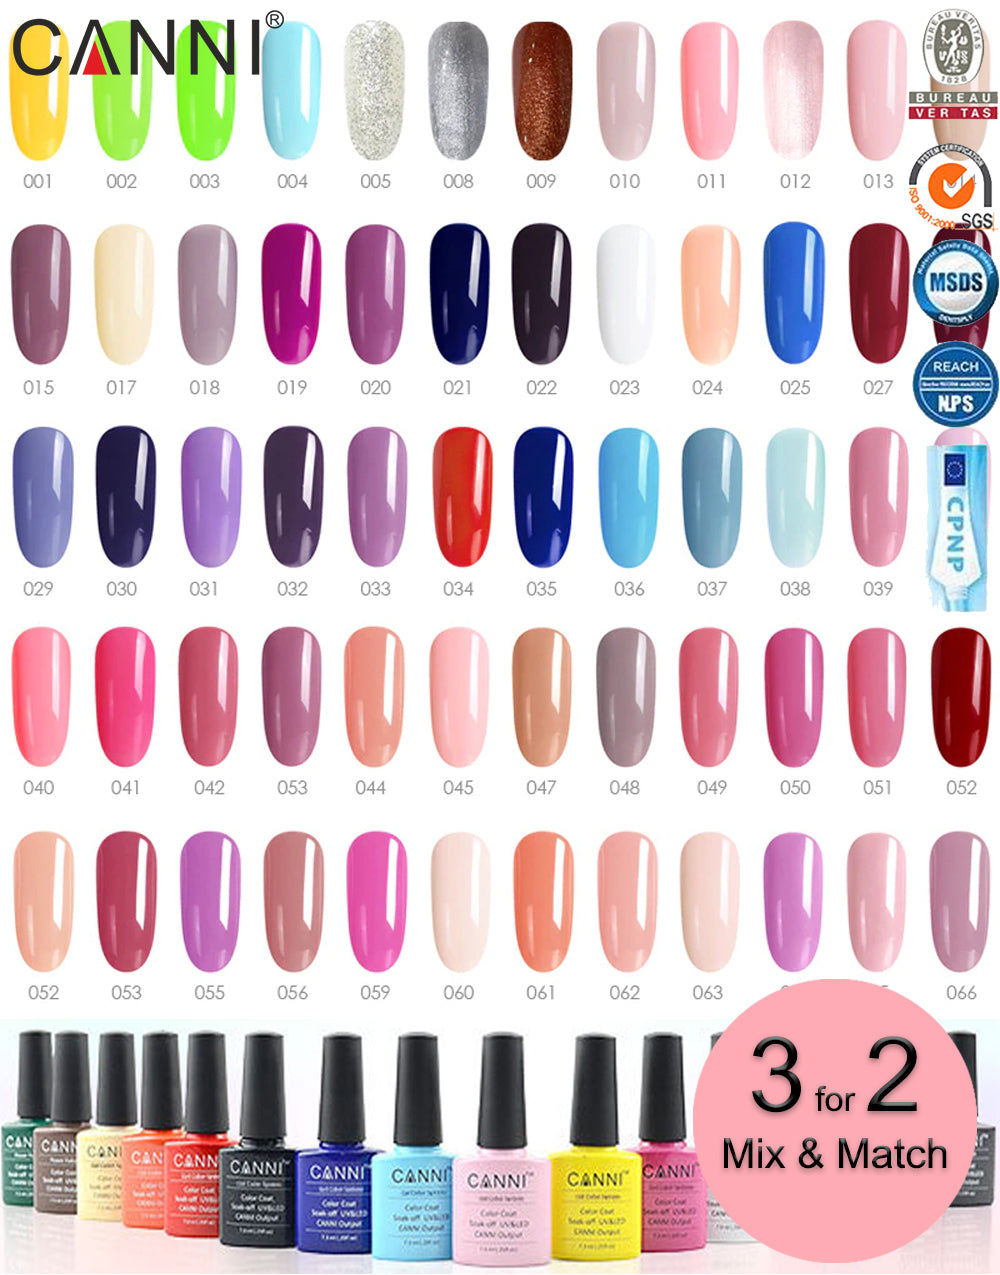 Canni Classic Range Soak Off UV / LED Nail Gel Polish Varnish - Shade 101 to 200